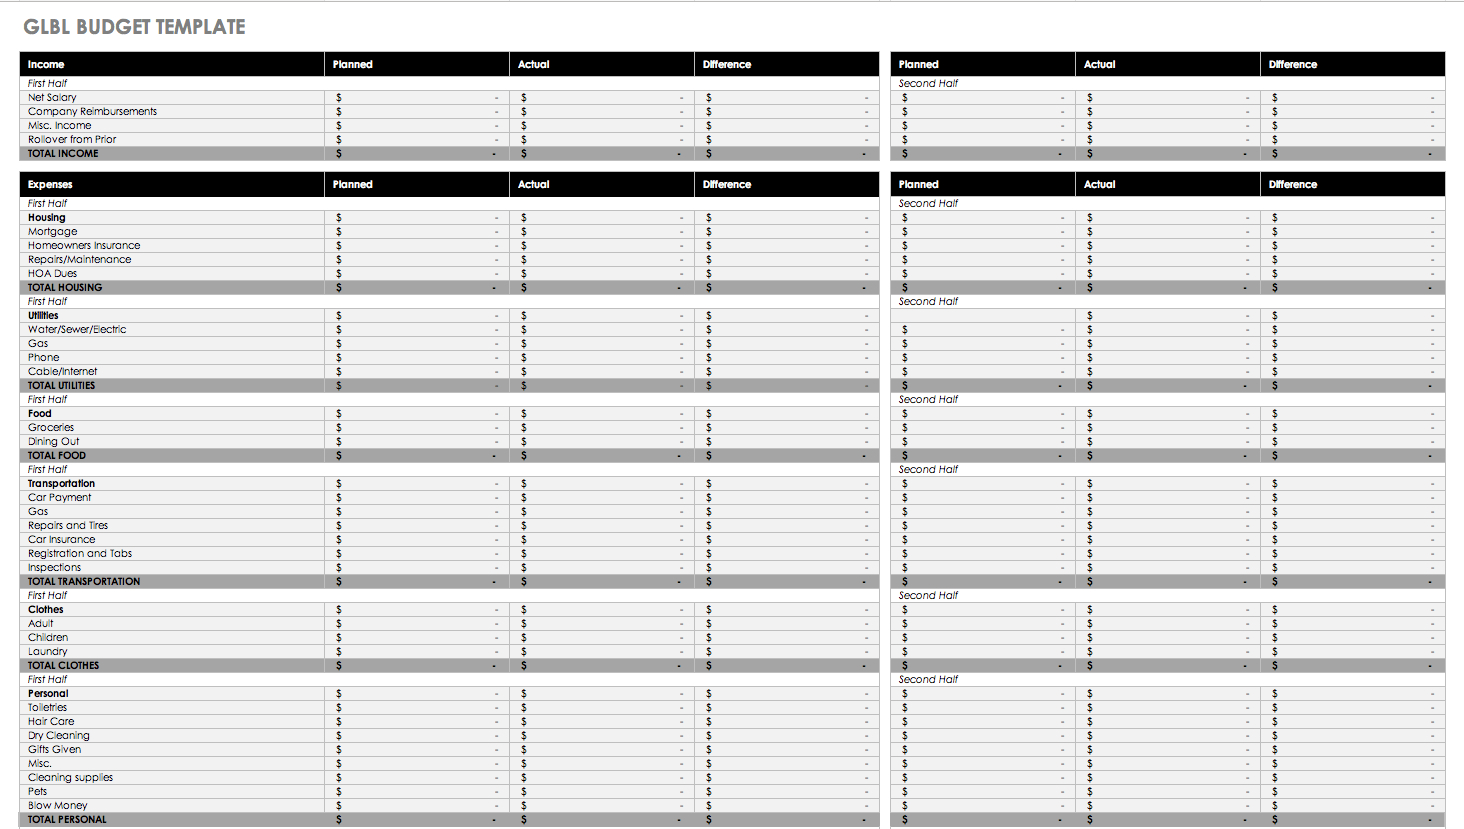 Free Budget Templates In Excel For Any Use - Free Printable Bi Weekly Budget Template